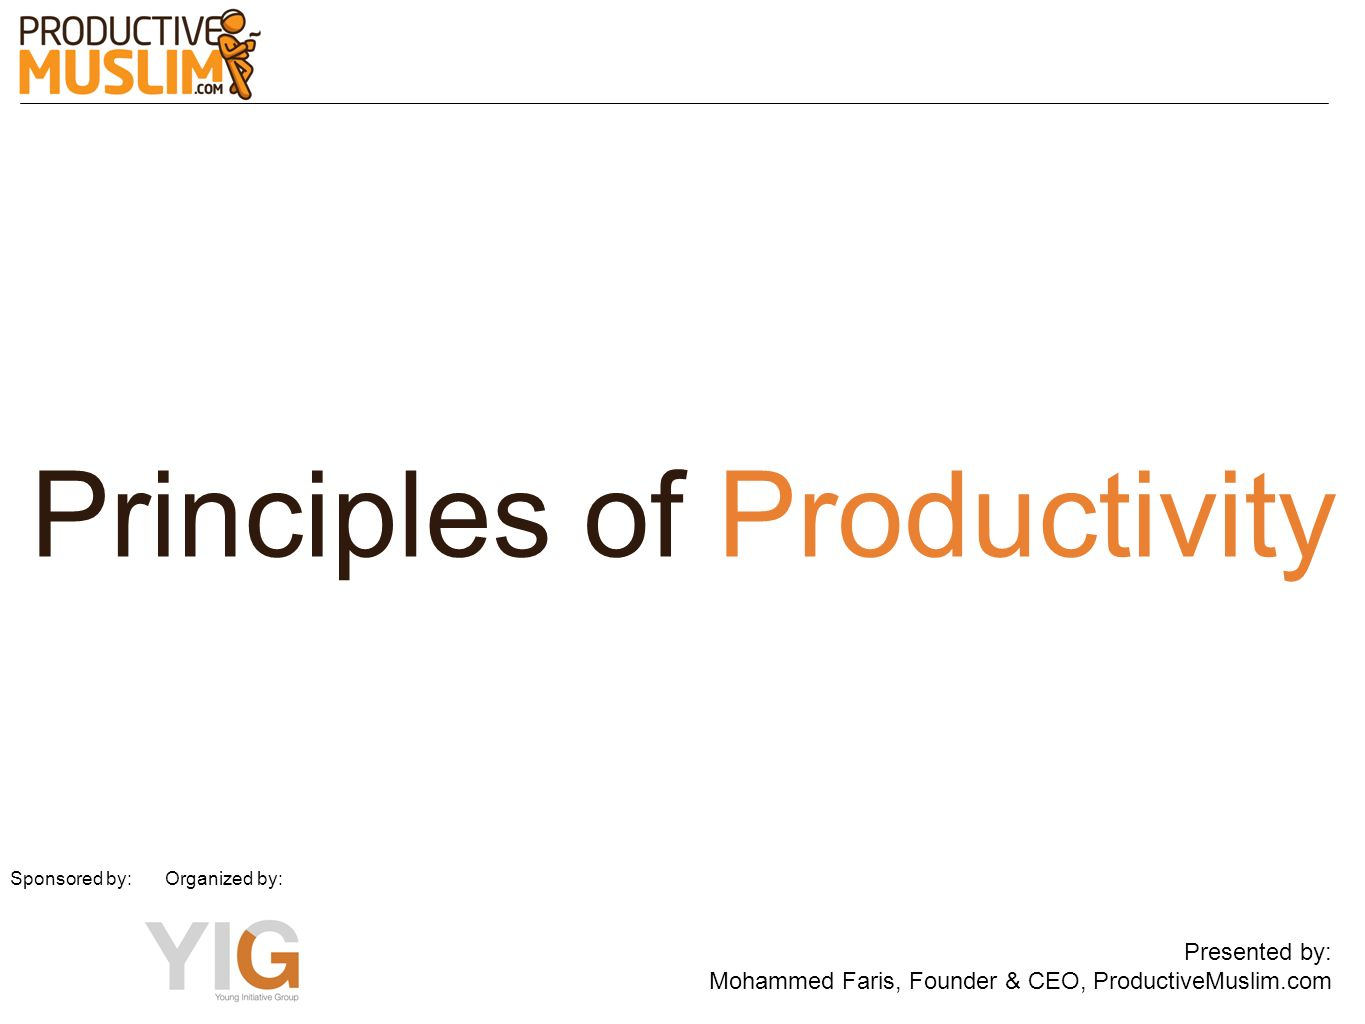 Principles of Productivity